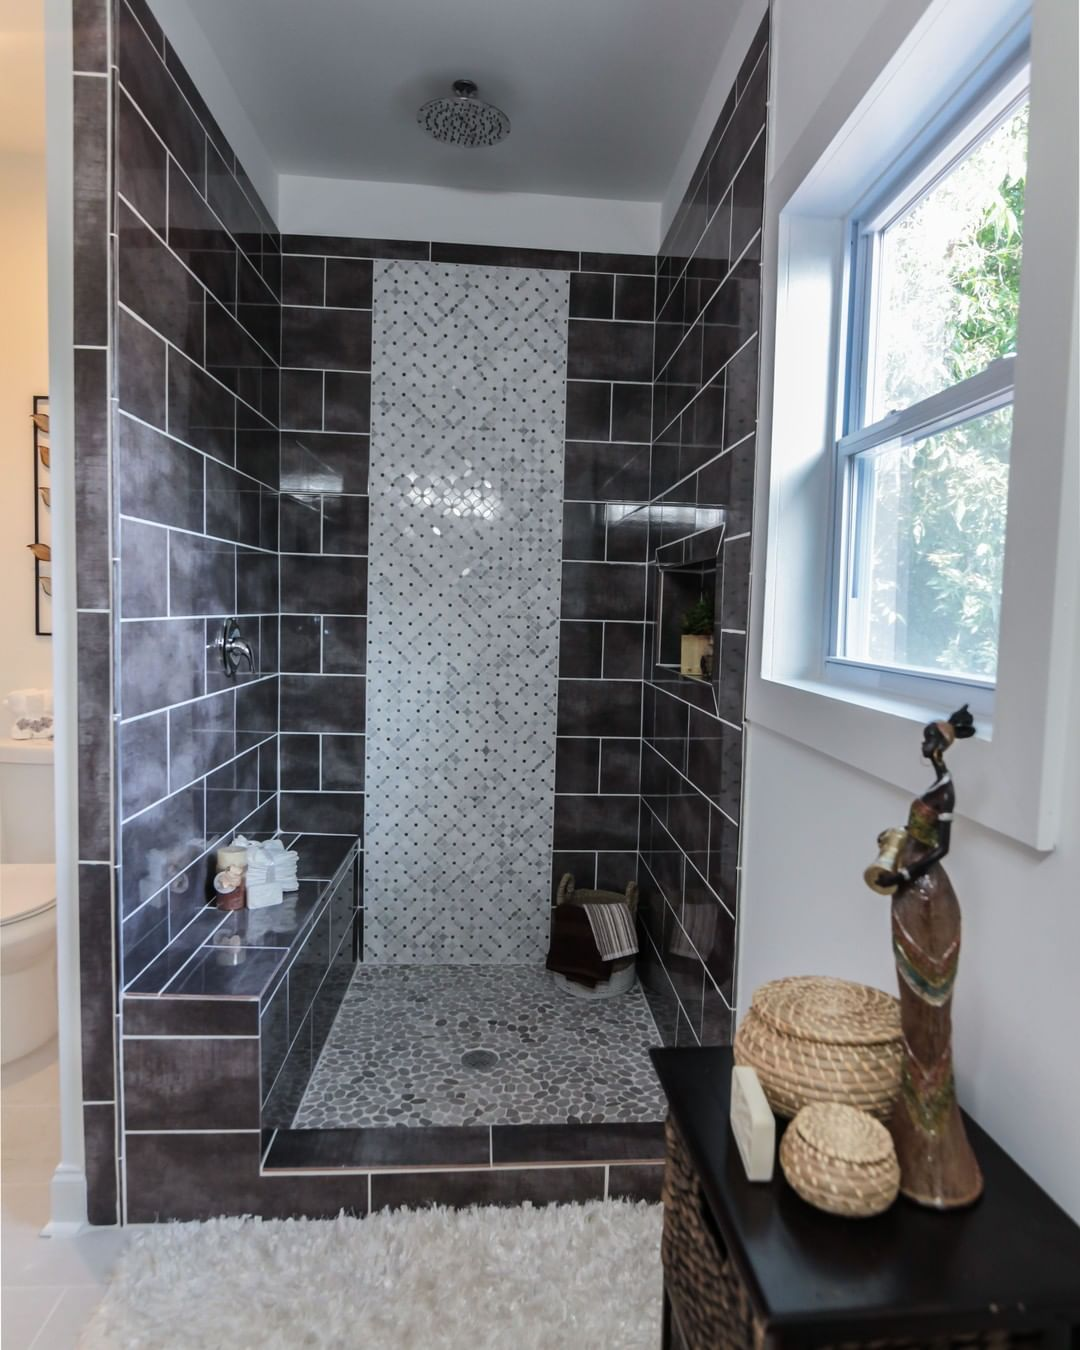 Mogimprovement Posted To Instagram Bathroom Remodel Ideas To Inspire And Motivate You To Ach Bathroom Remodel Pictures Bathrooms Remodel Diy Bathroom Remodel